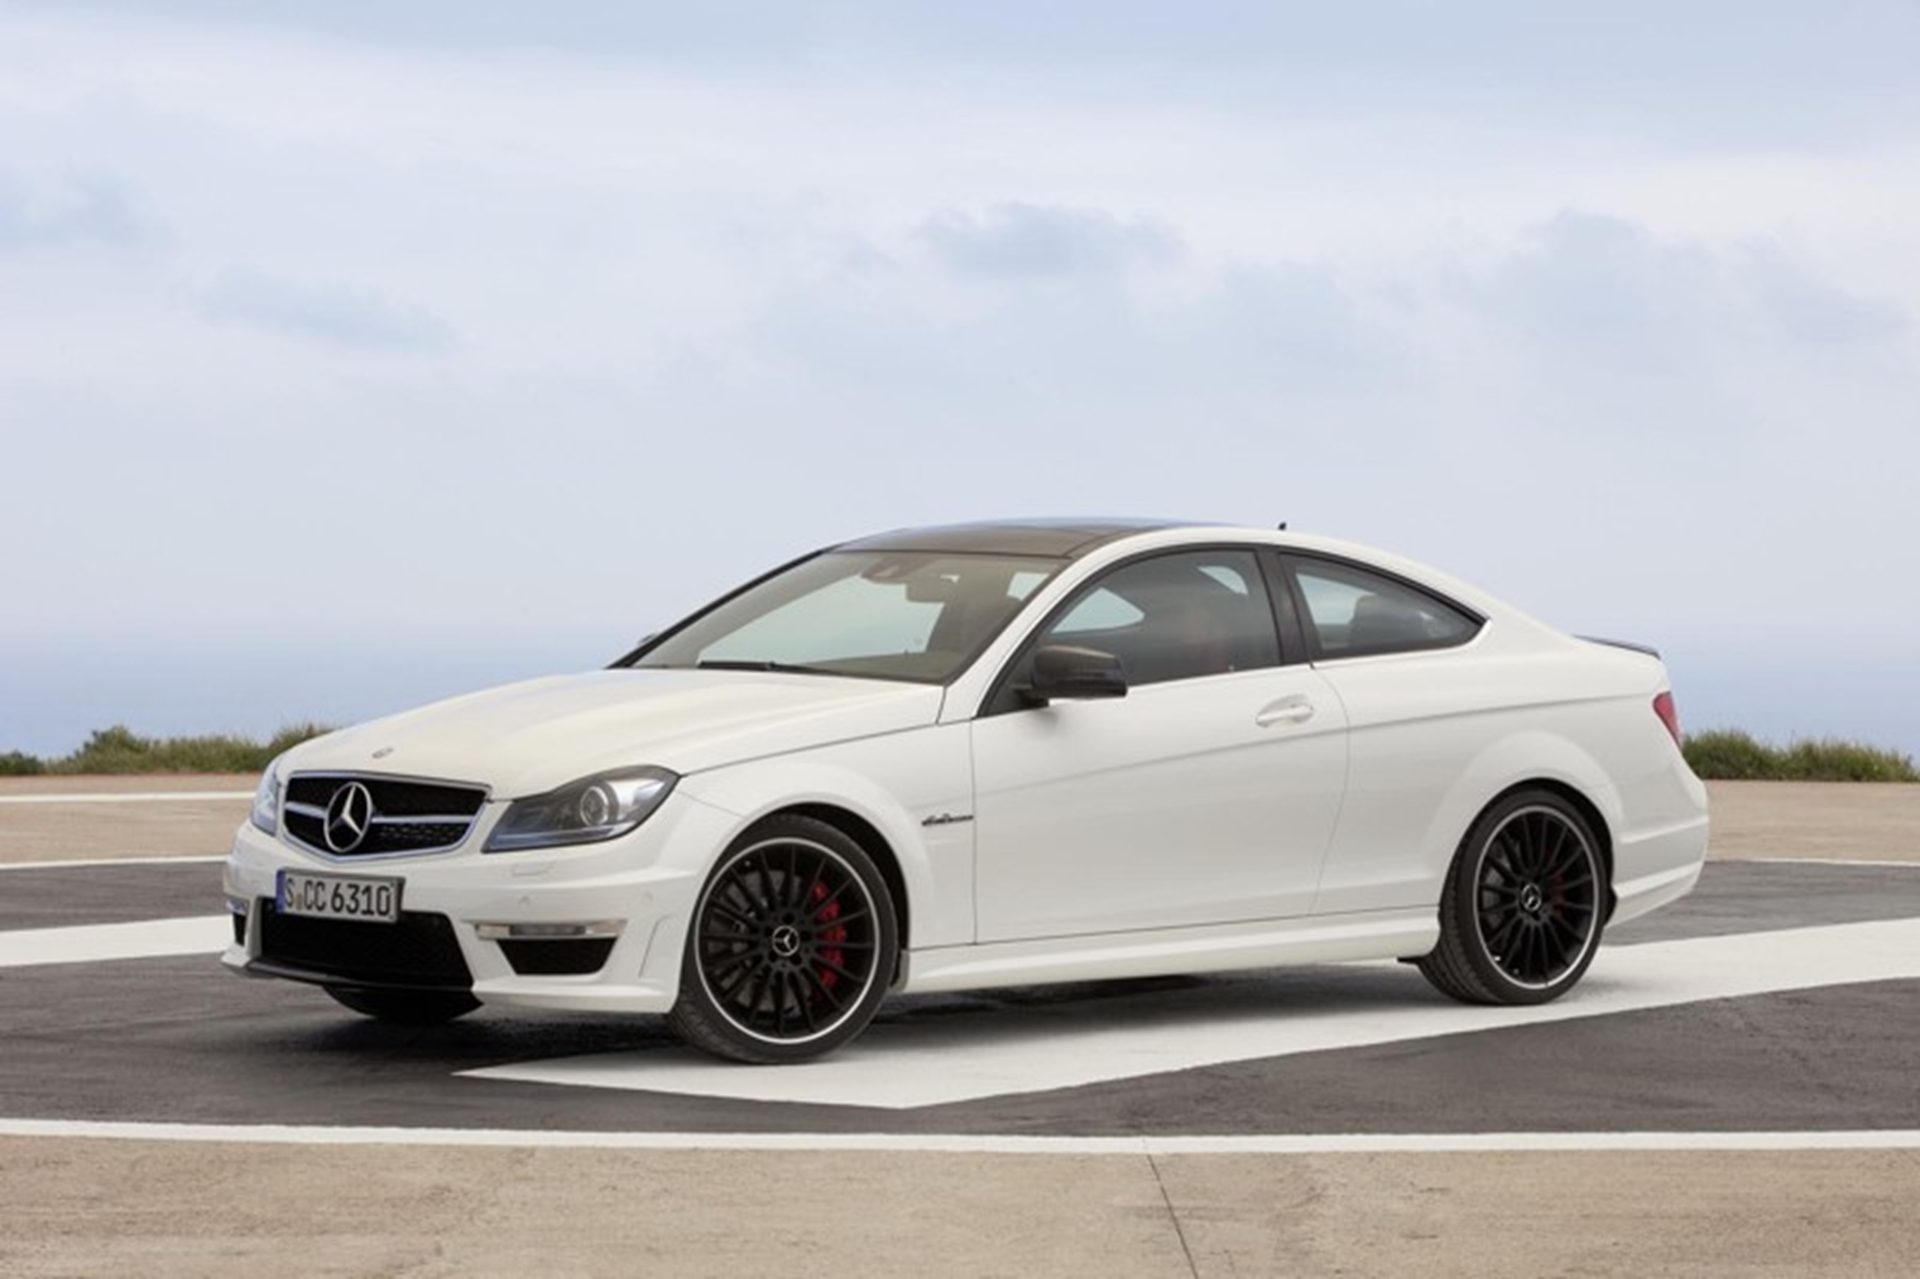 Coupe Mercedes Benz C 63 AMG